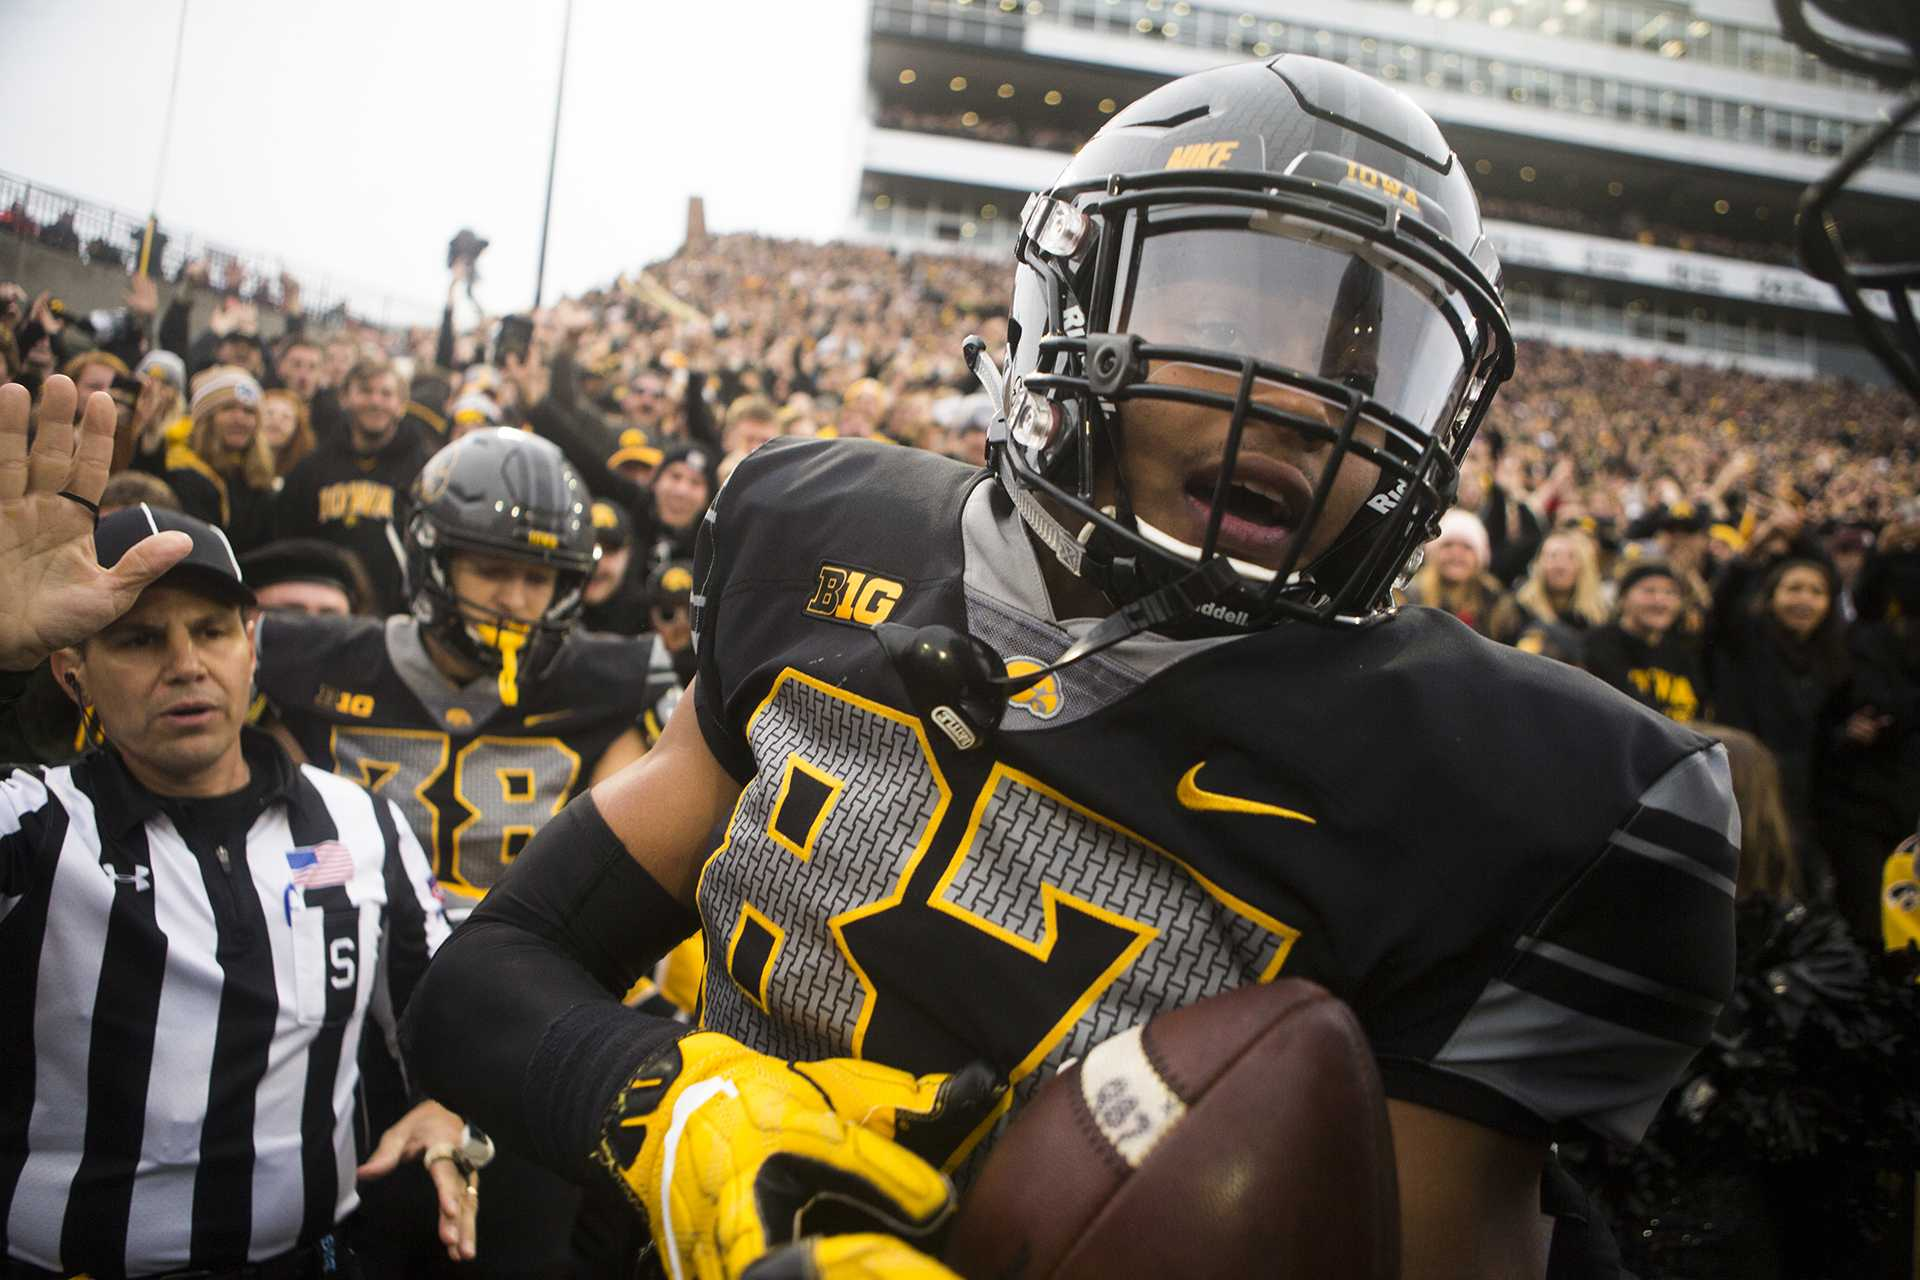 Iowa tight end Noah Fant celebrates with teammates after scoring a touchdown during the Iowa/Ohio State football game in Kinnick Stadium on Saturday, Nov. 4, 2017. The Hawkeyes defeated the Buckeyes in a storming fashion, 55-24. (Joseph Cress/The Daily Iowan)